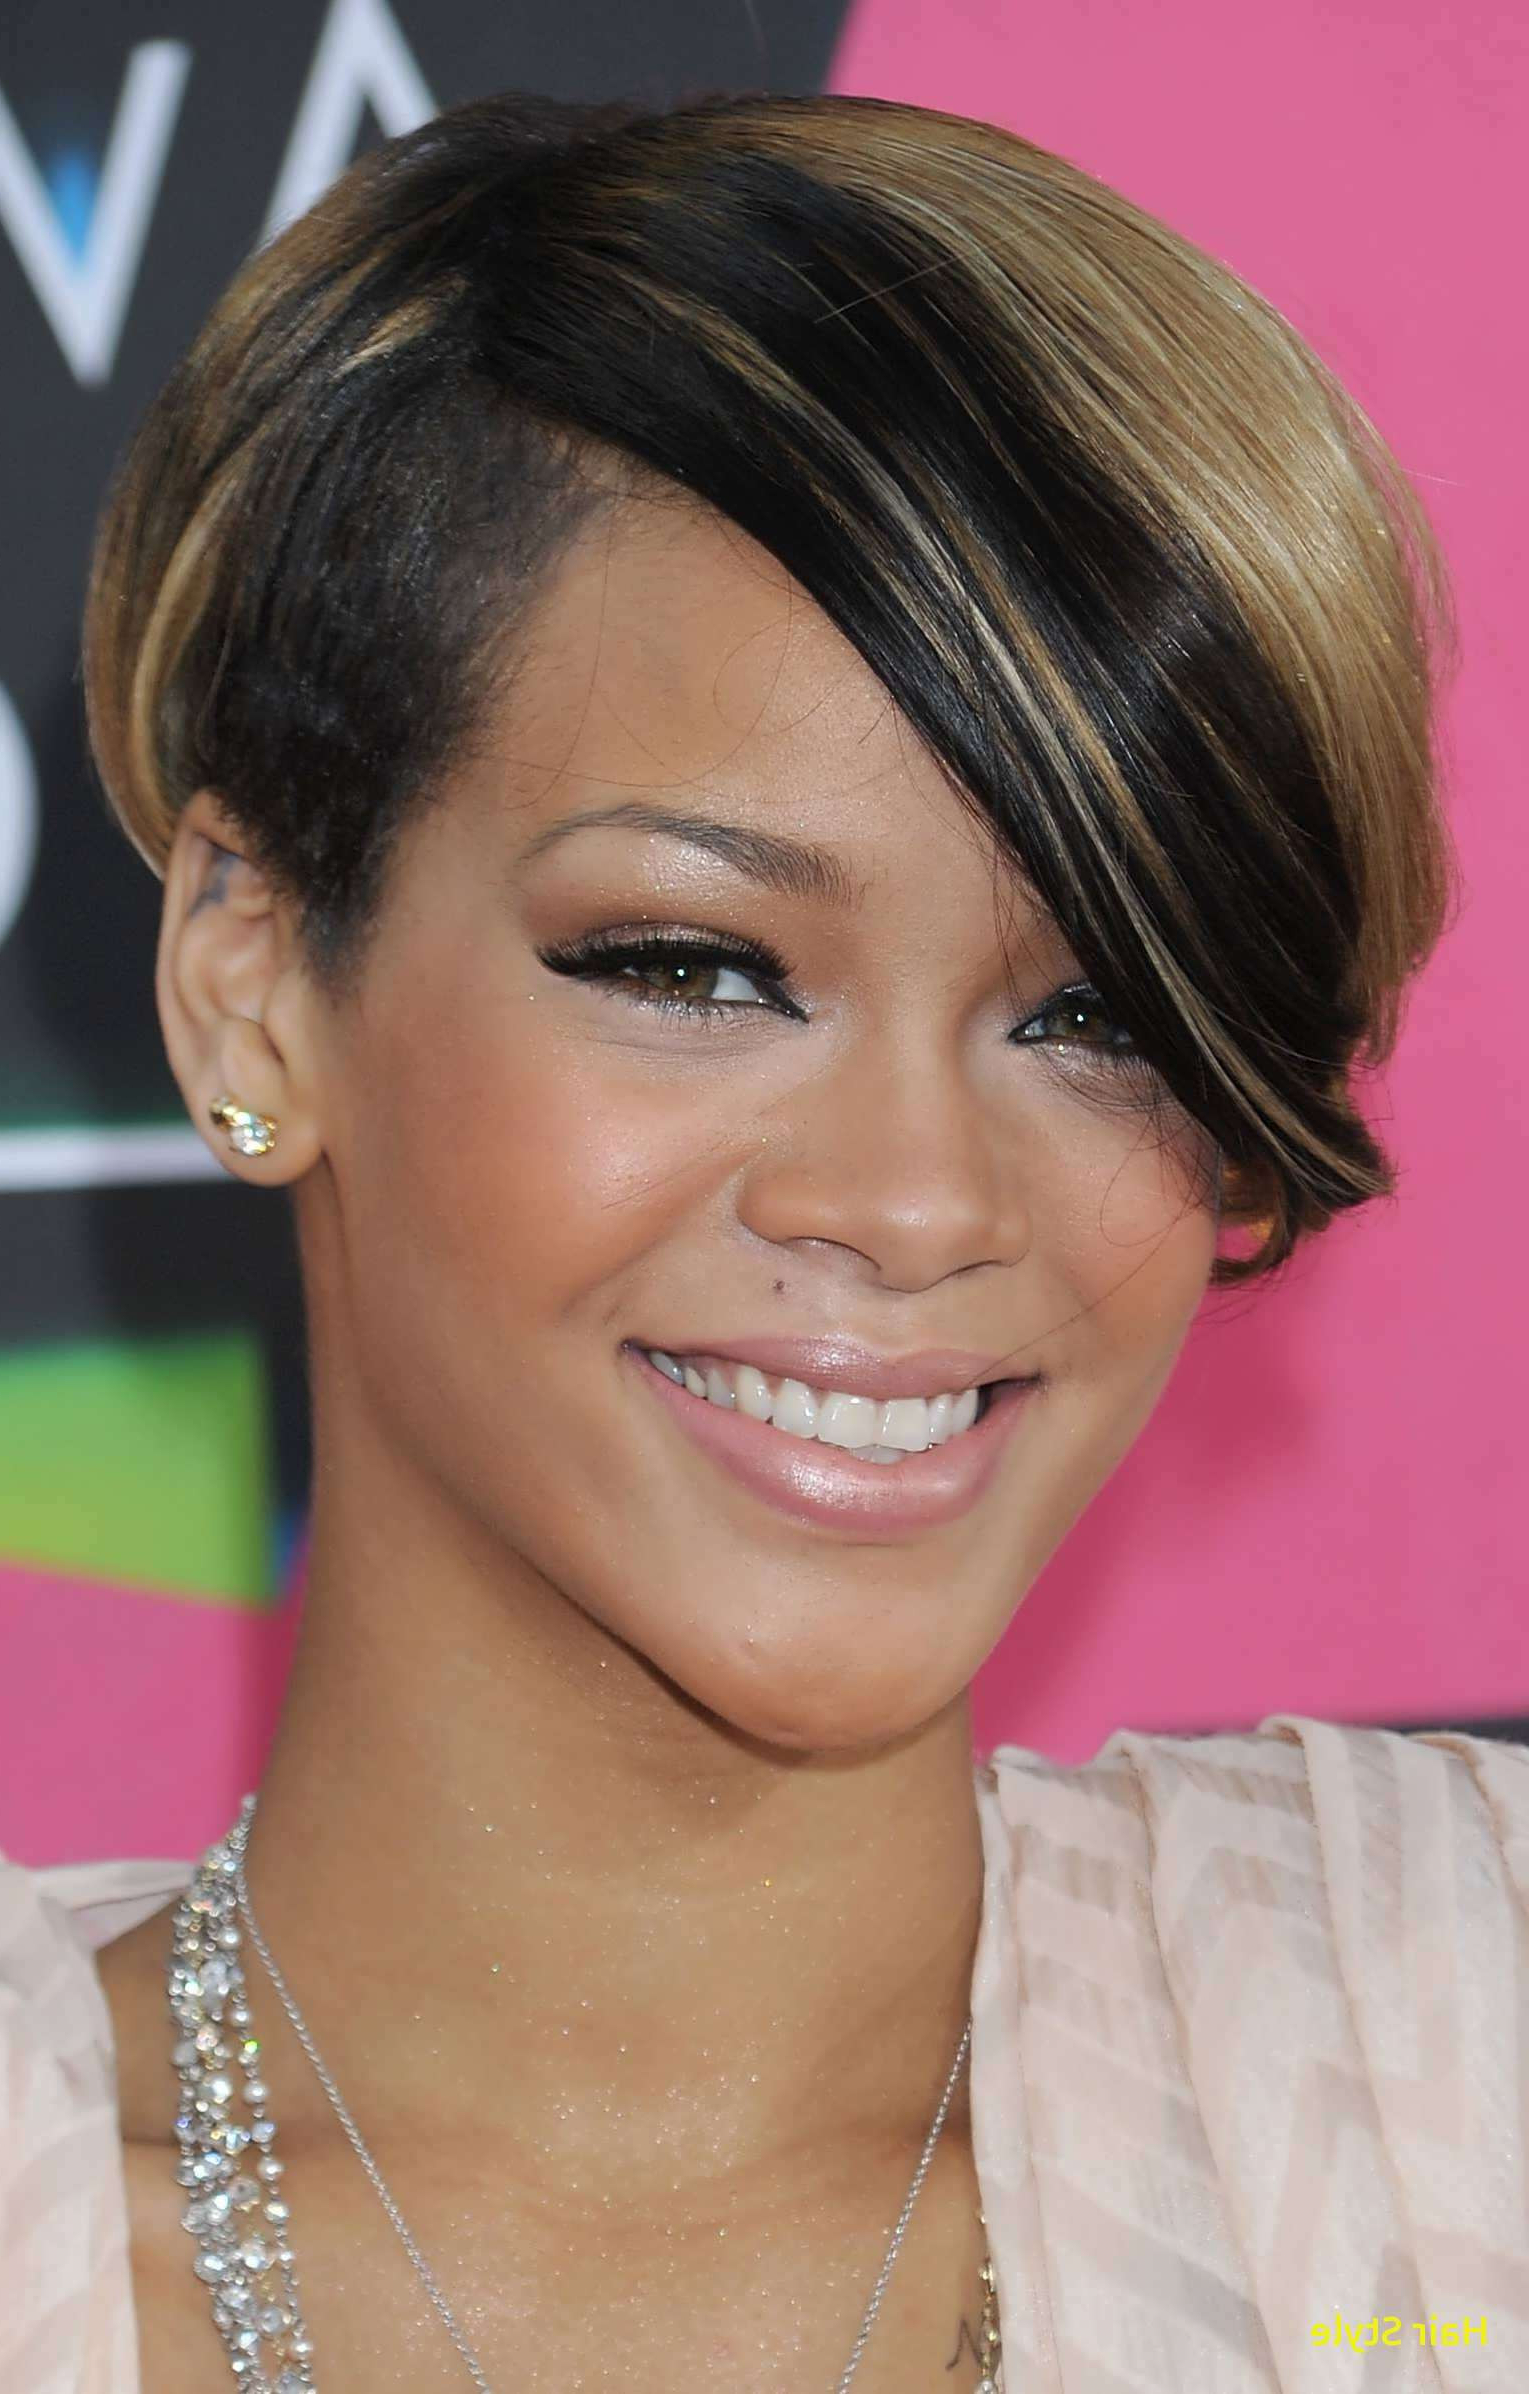 Short Hairstyles For Black Women With Fat Faces Images Awesome Throughout Short Haircuts For Black Women With Round Faces (View 22 of 25)